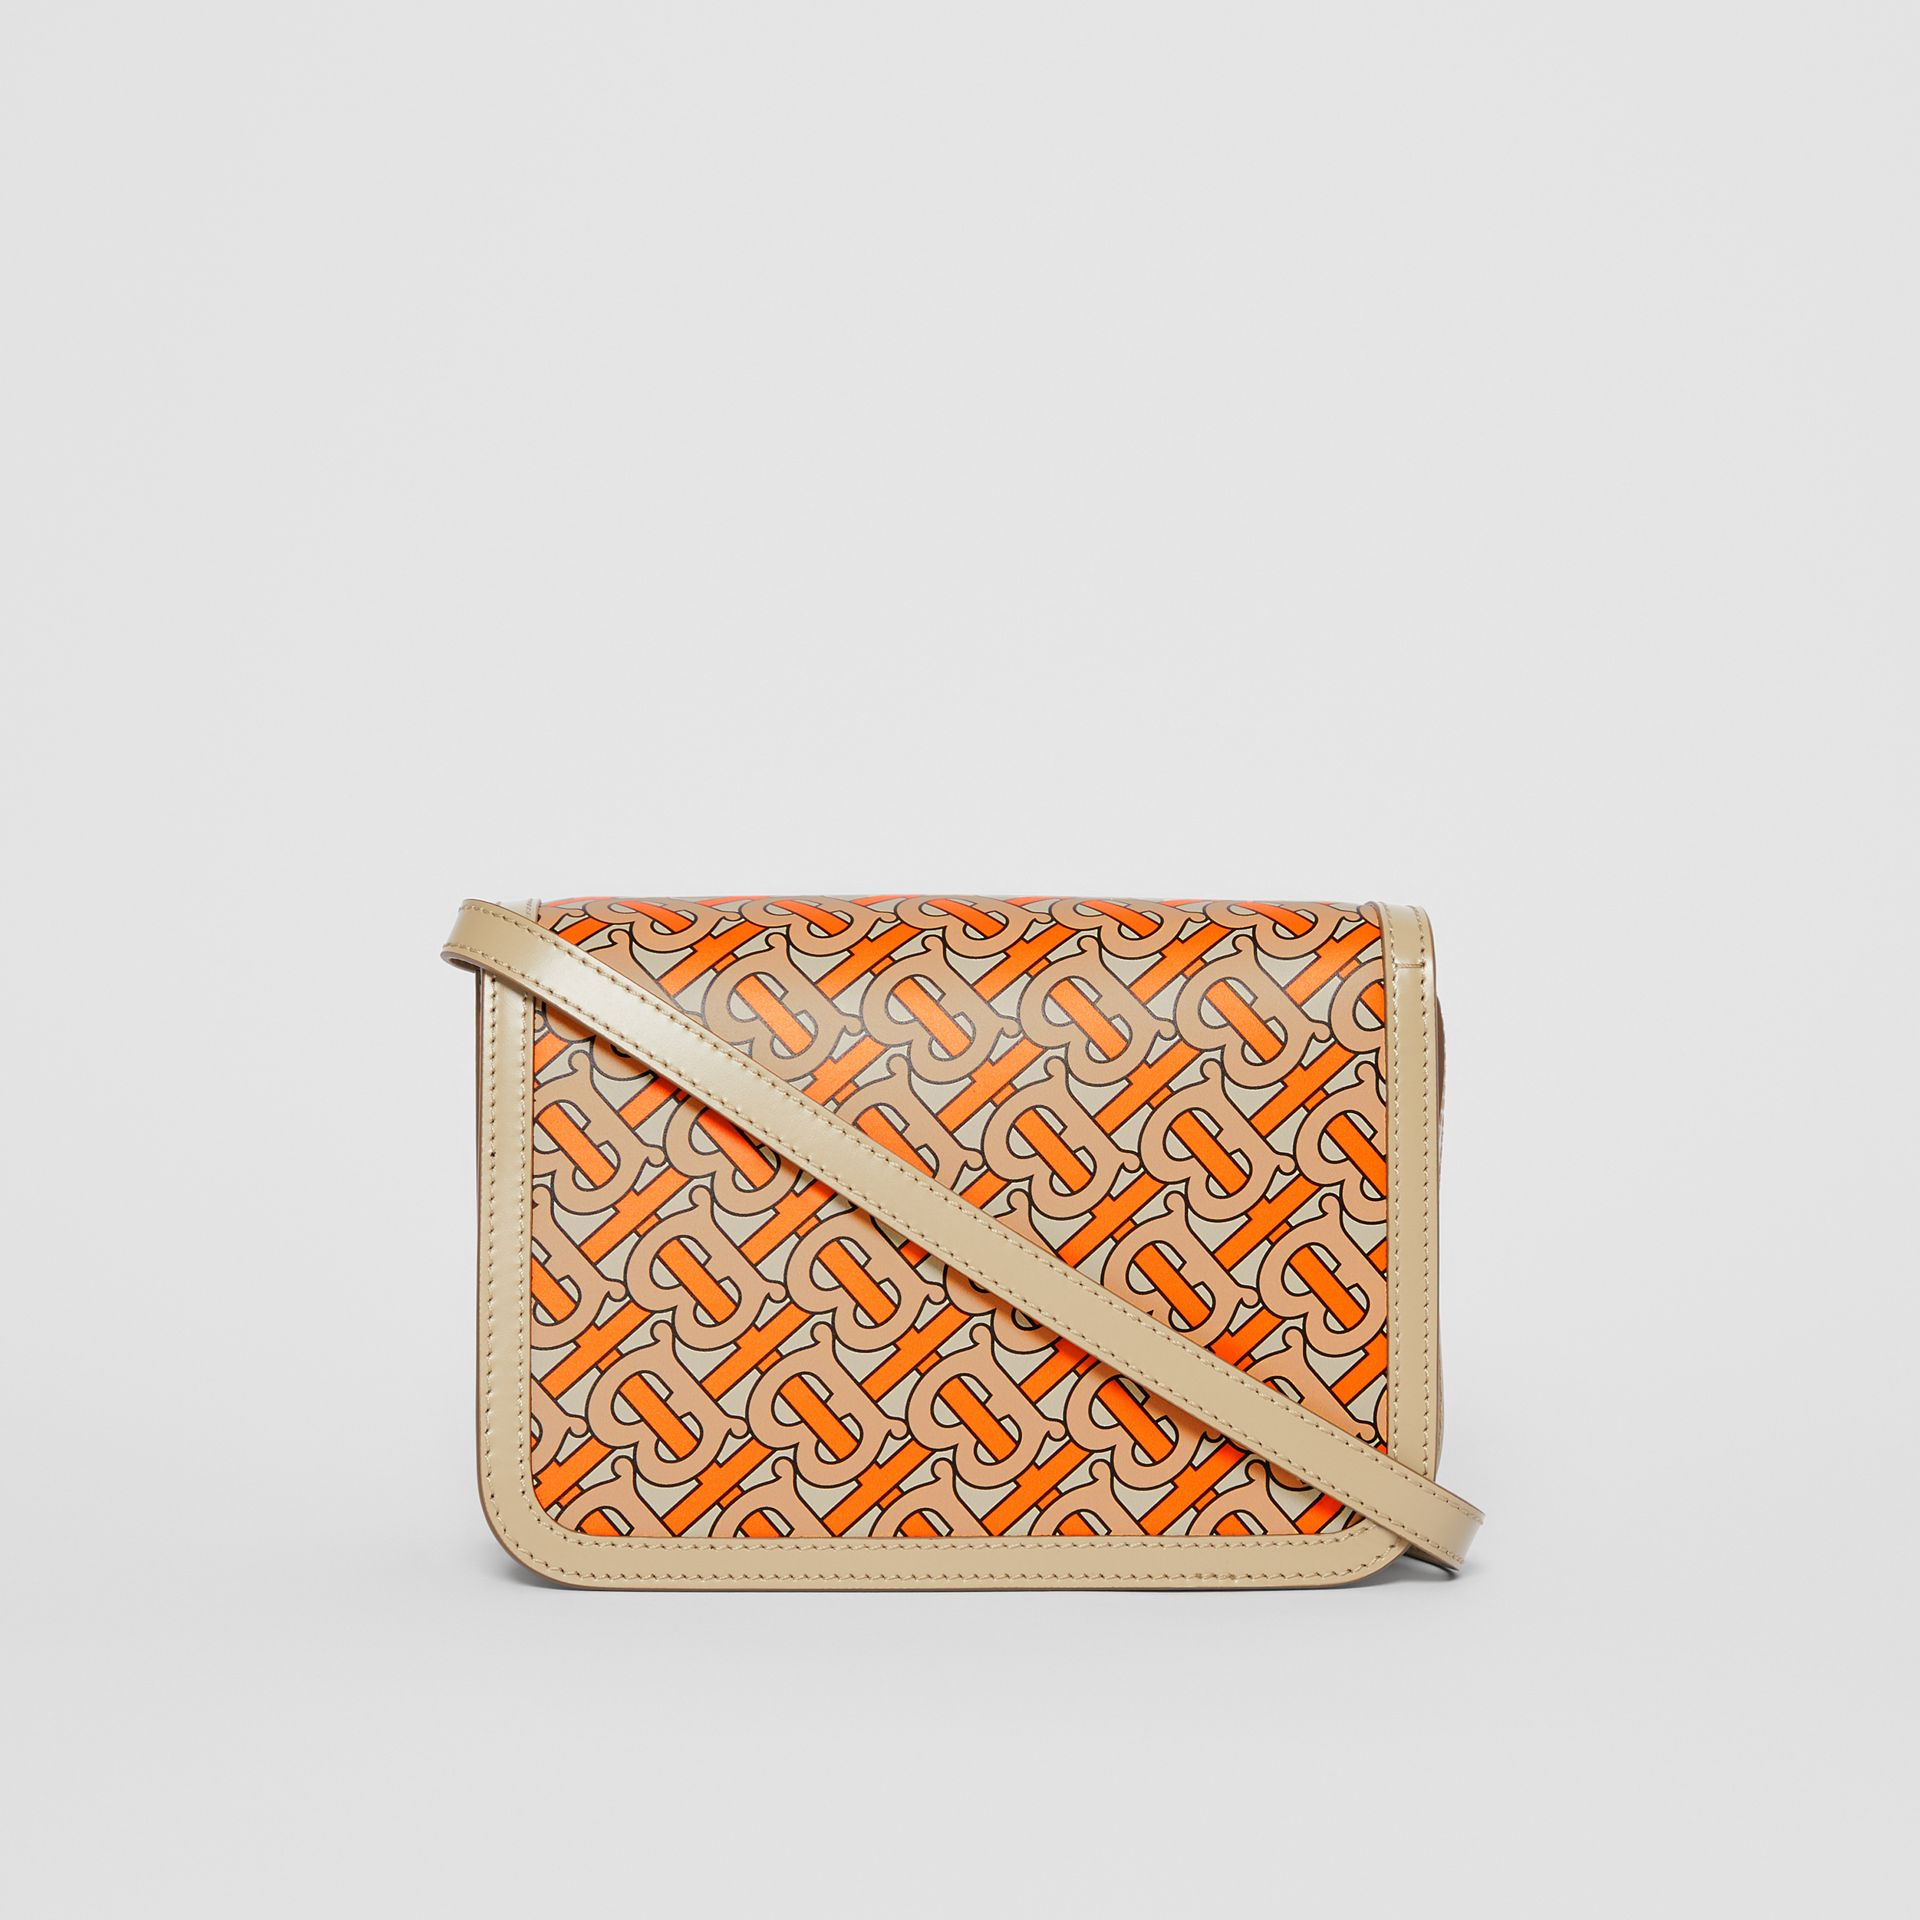 Small Monogram Print Leather TB Bag in Bright Orange - Women | Burberry - gallery image 7